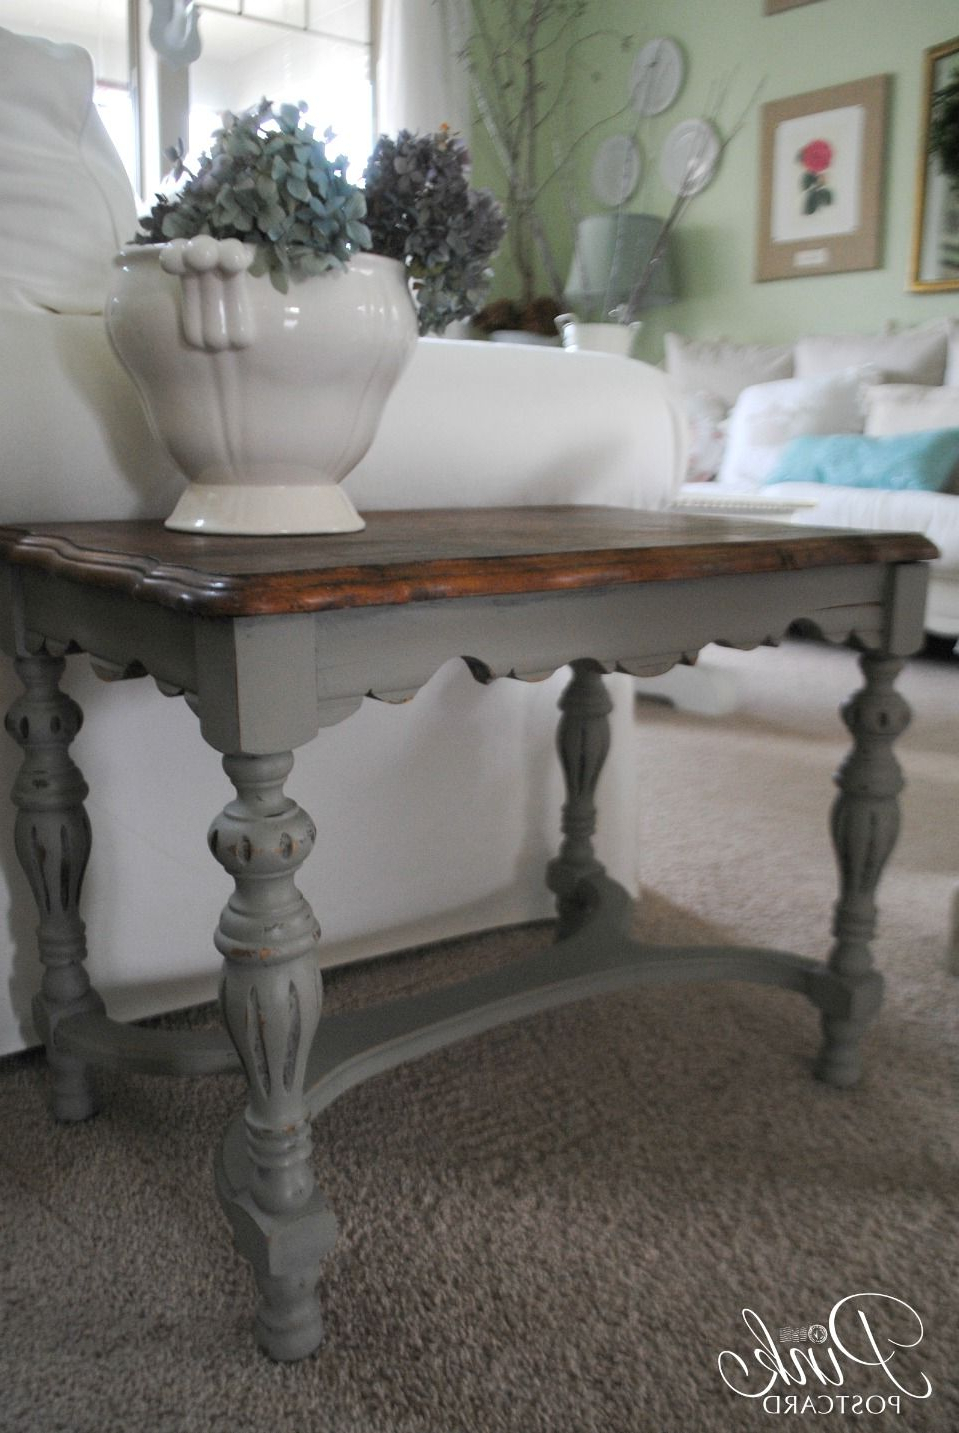 Trendy Round White Wash Brass Painted Coffee Tables Regarding Pinkpostcard (View 16 of 20)